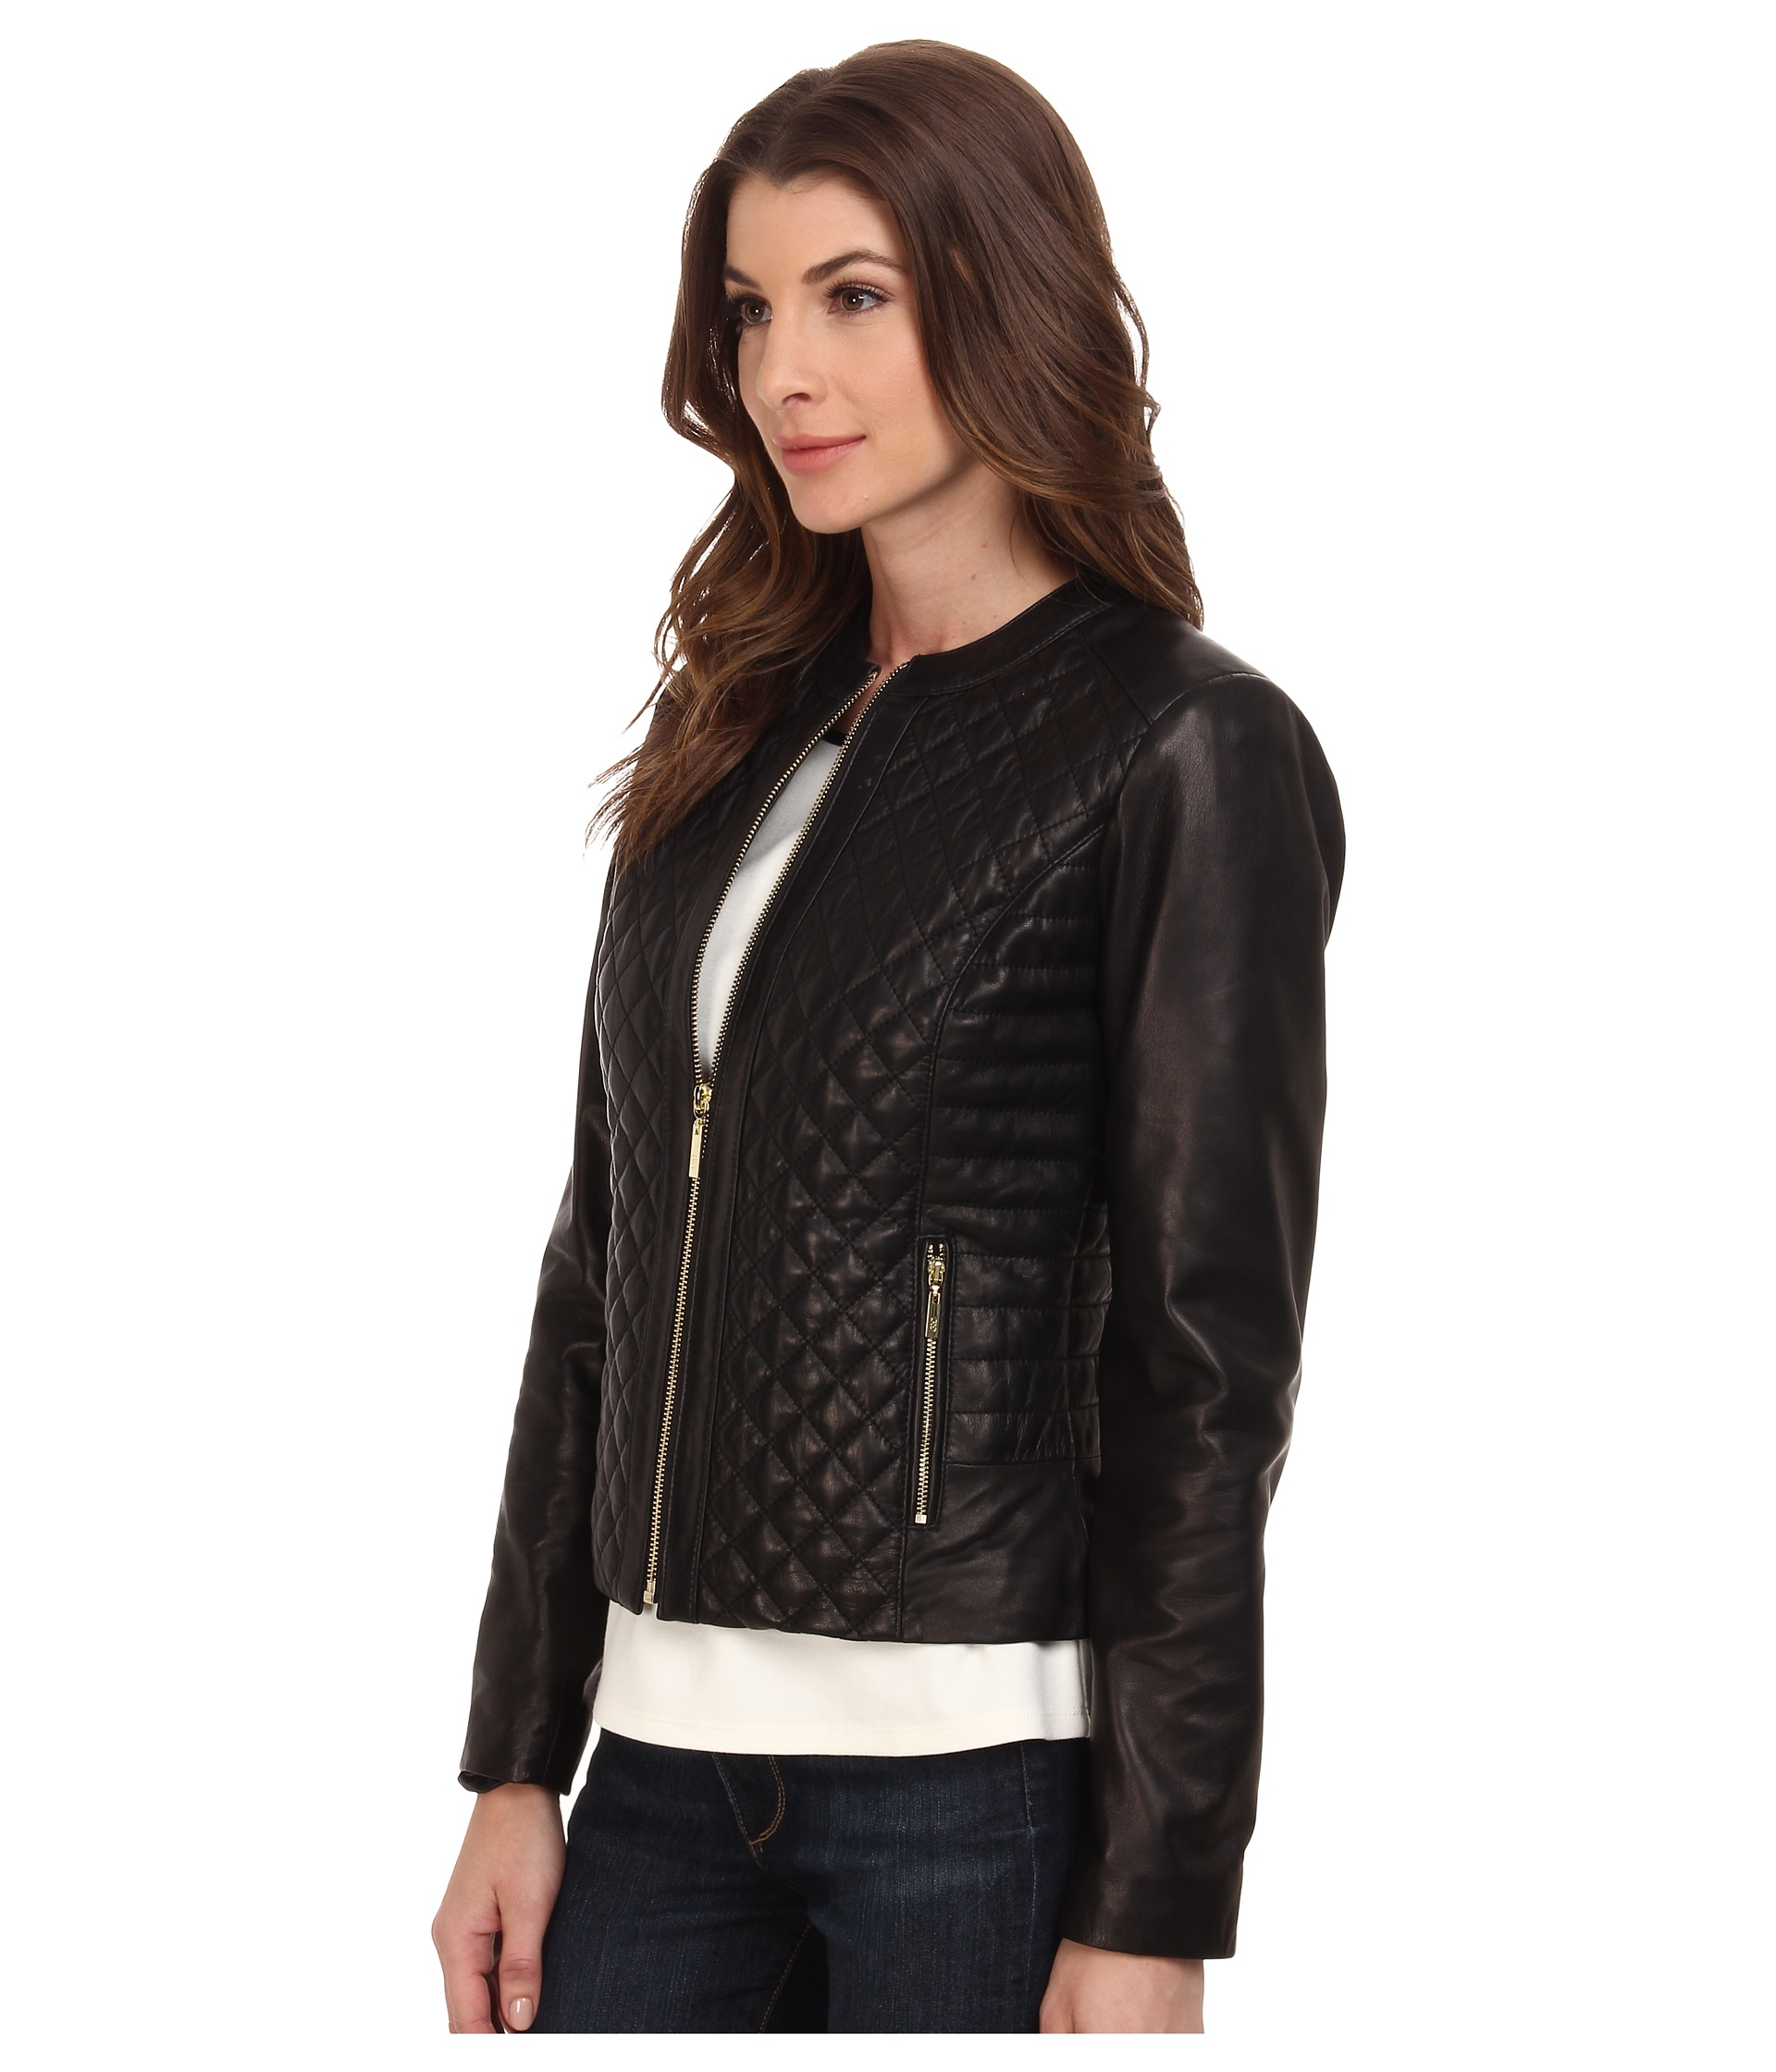 Lyst - Cole haan Collarless Moto Diamond Quilted Leather Jacket in ... : cole haan leather jacket diamond quilted - Adamdwight.com